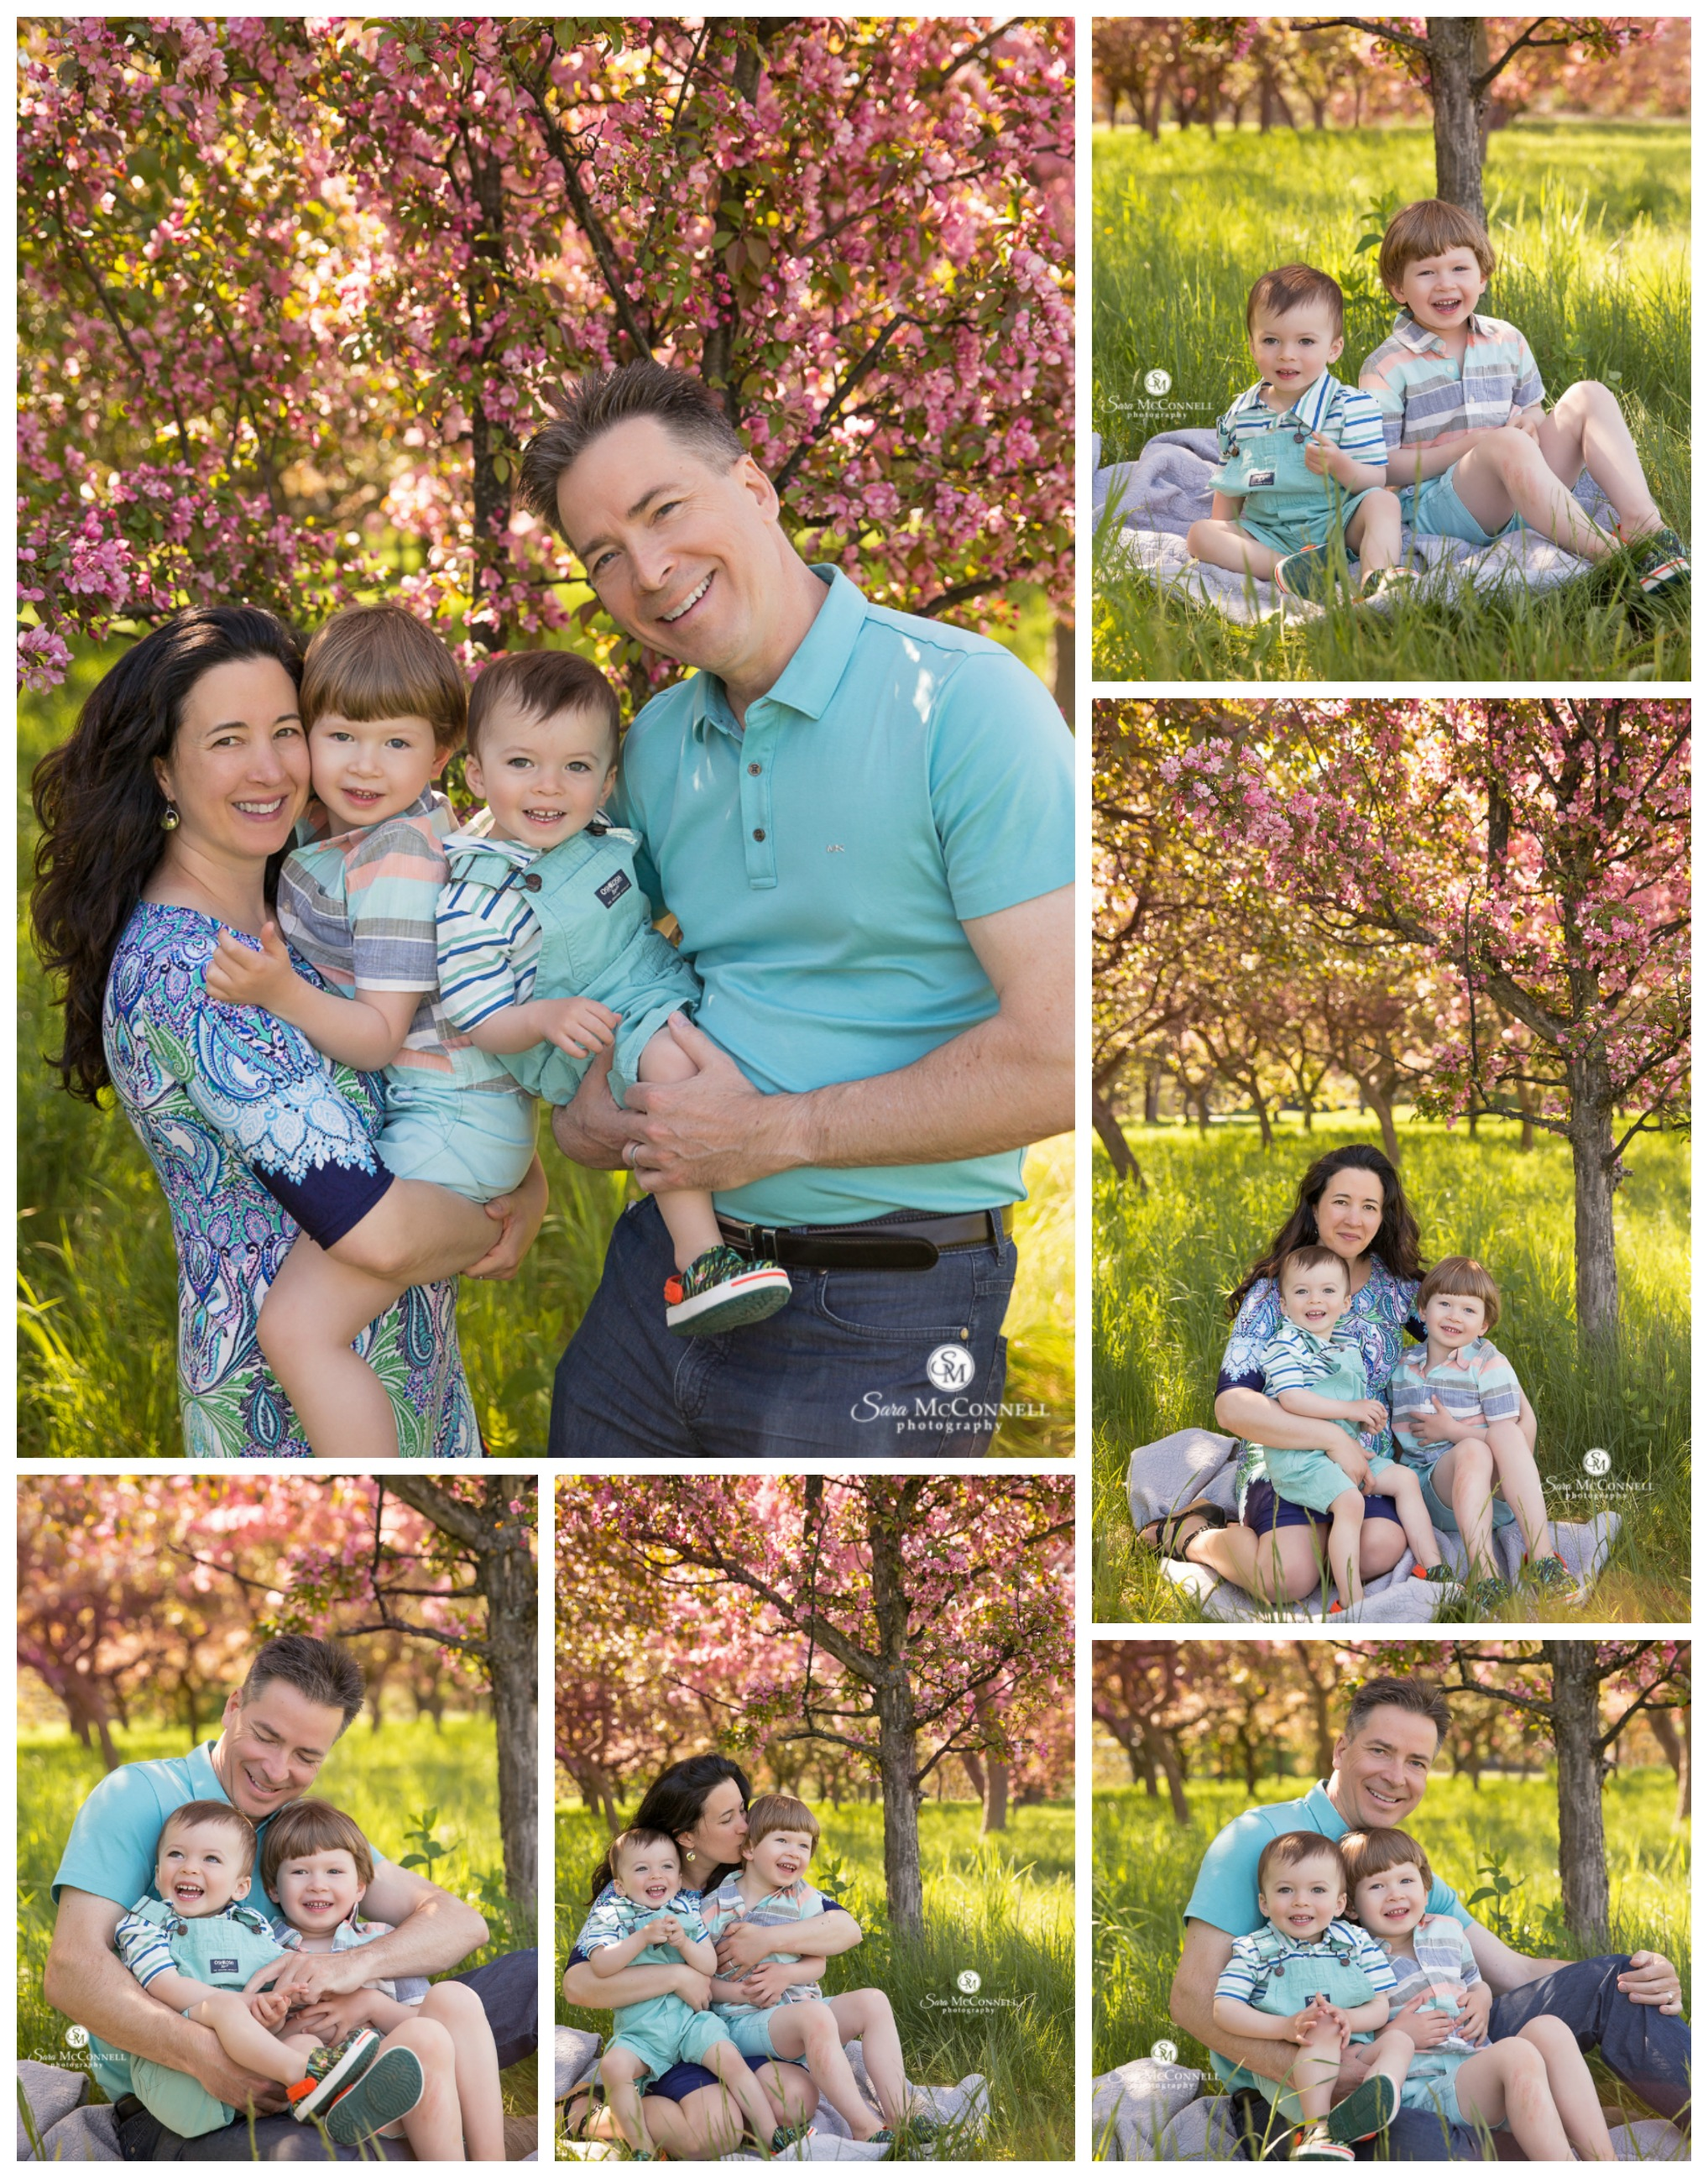 Ottawa Spring Family Photos by Sara McConnell Photography